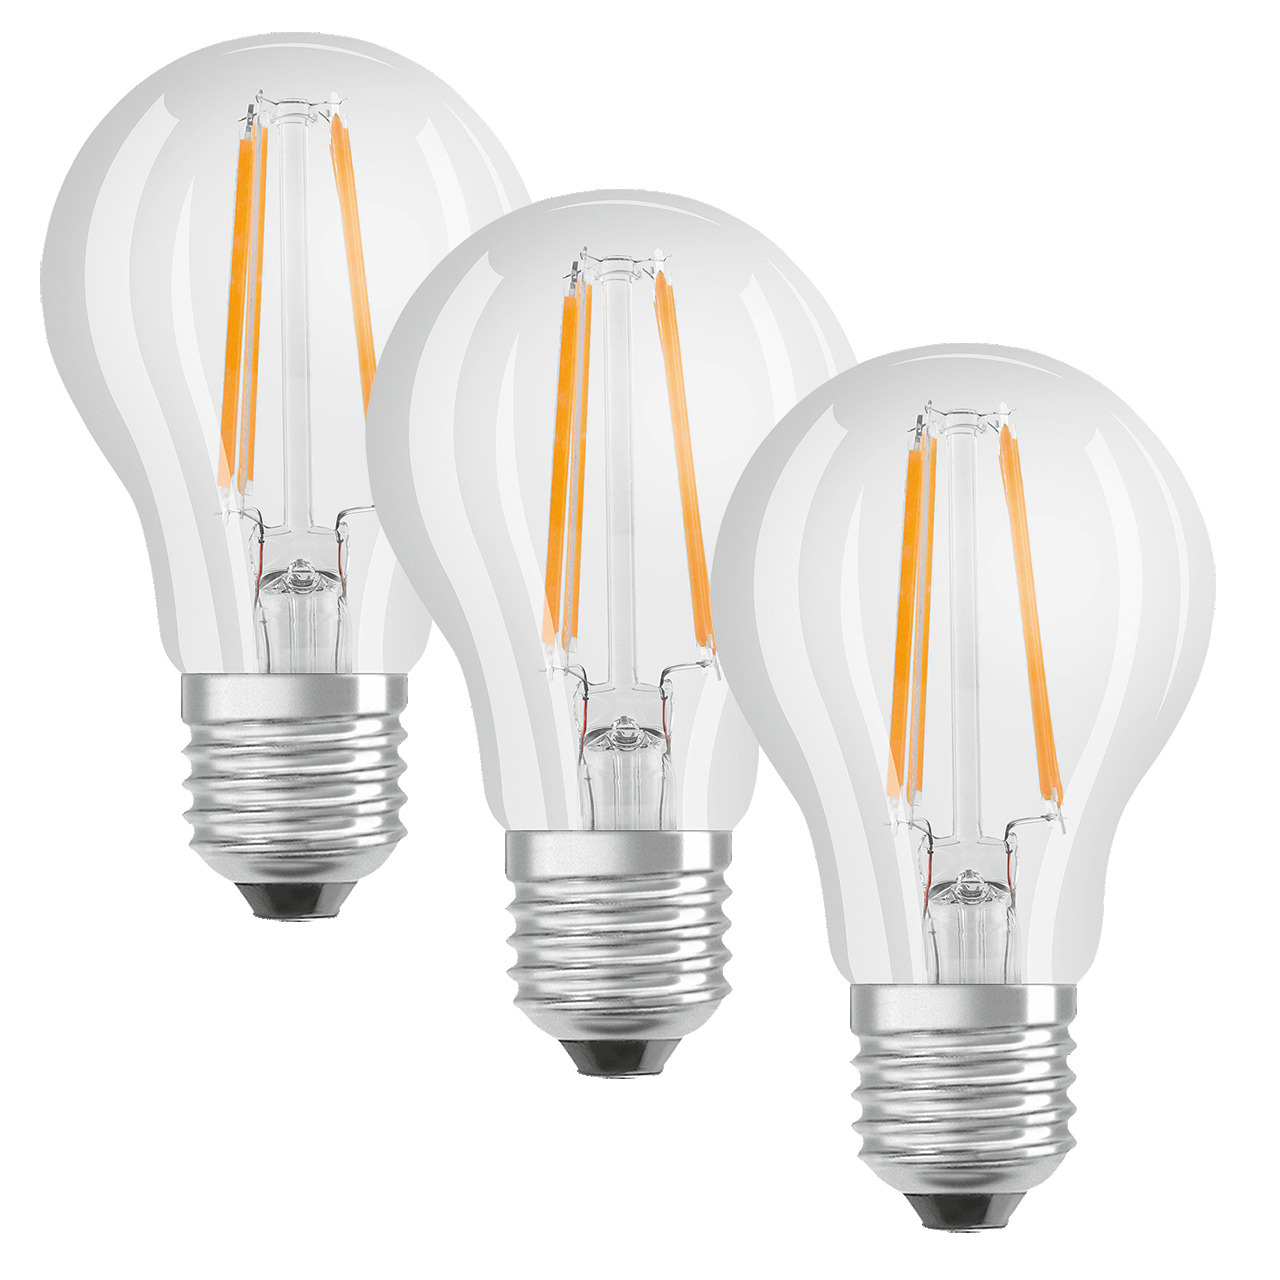 OSRAM LED PROMO 3er Set 7-W-Filament-LED-Lampe E27- neutralweiss- klar